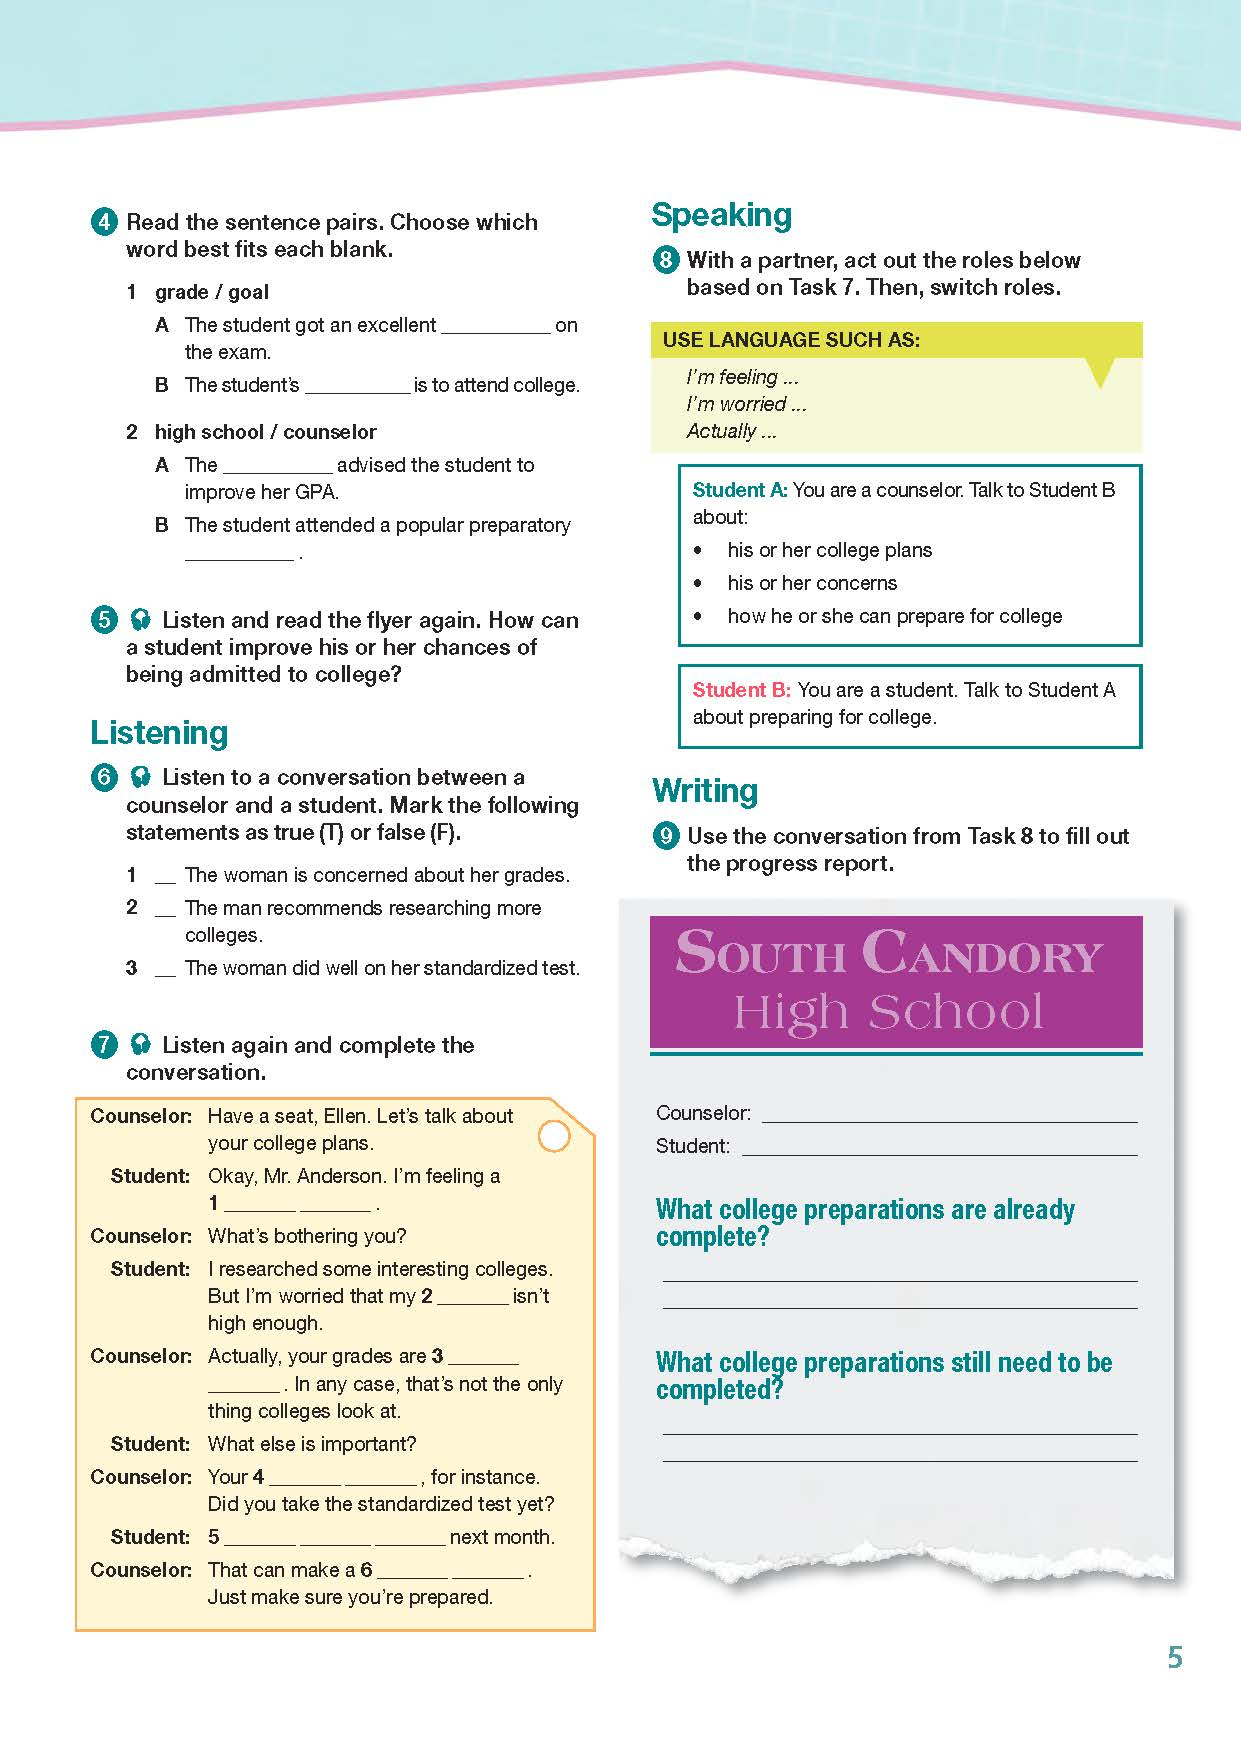 ESP English for Specific Purposes - Career Paths: University Studies - Sample Page 2